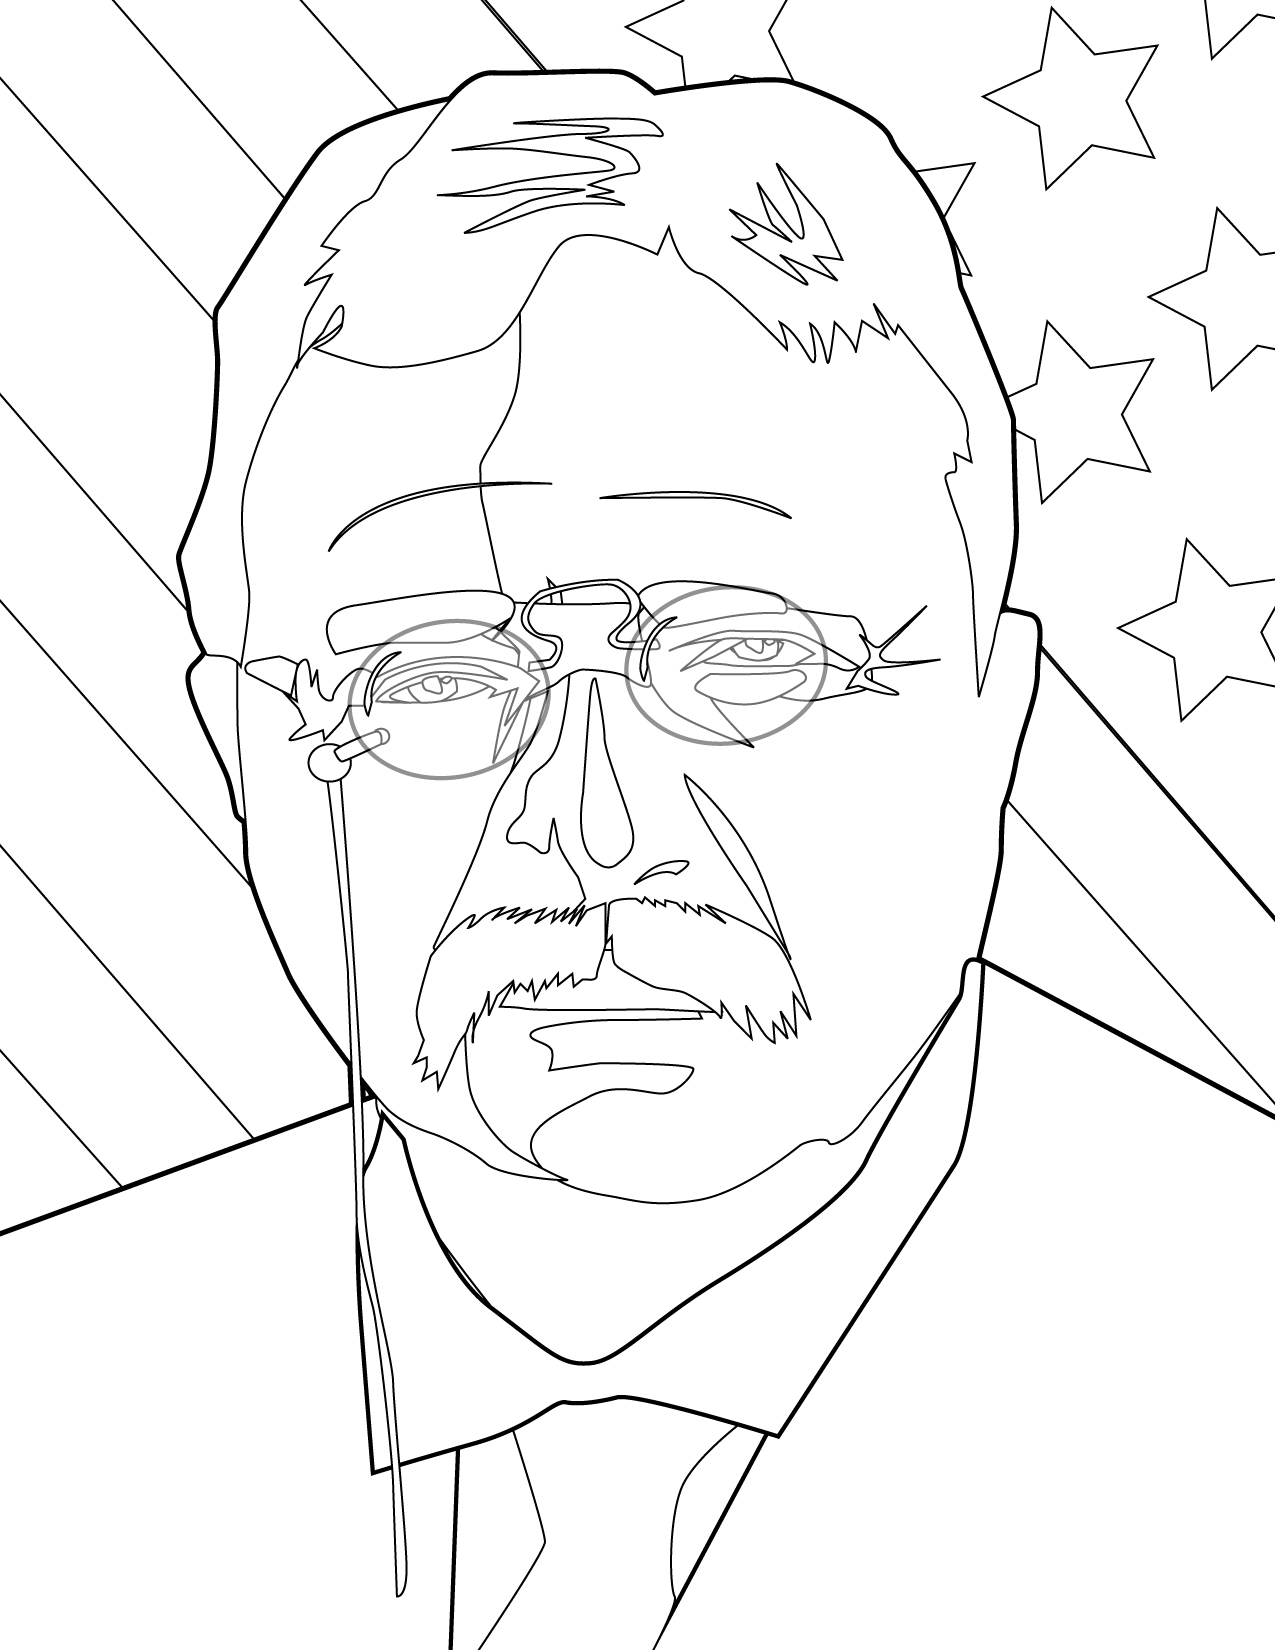 1275x1650 Theodore Roosevelt Coloring Page